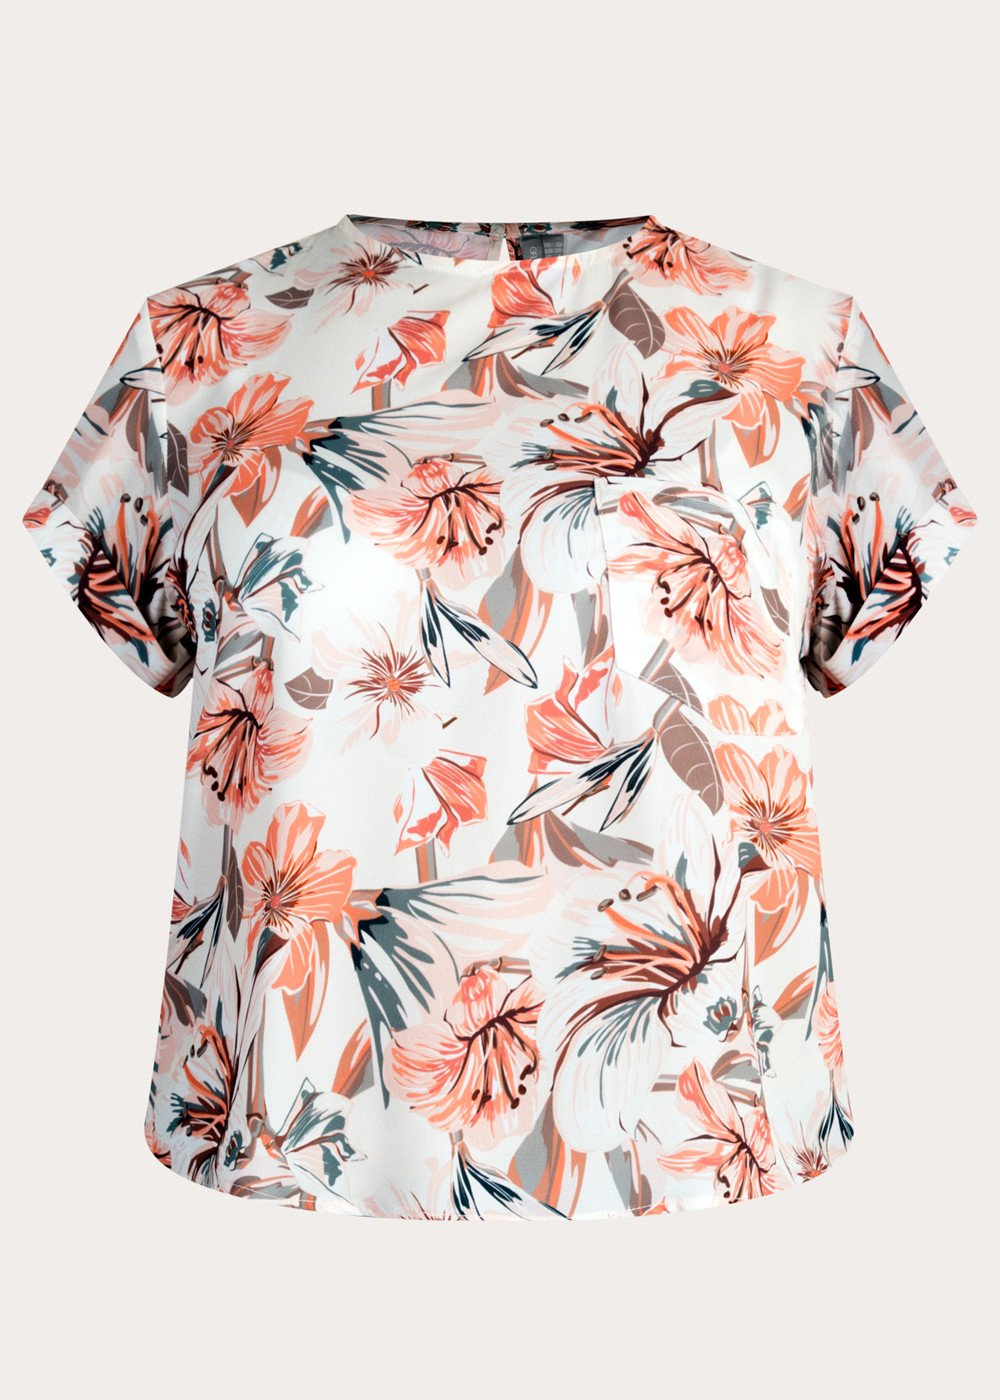 GFLOCK - [product_sku] - Women_Top - Tropical Printed Pocket Top